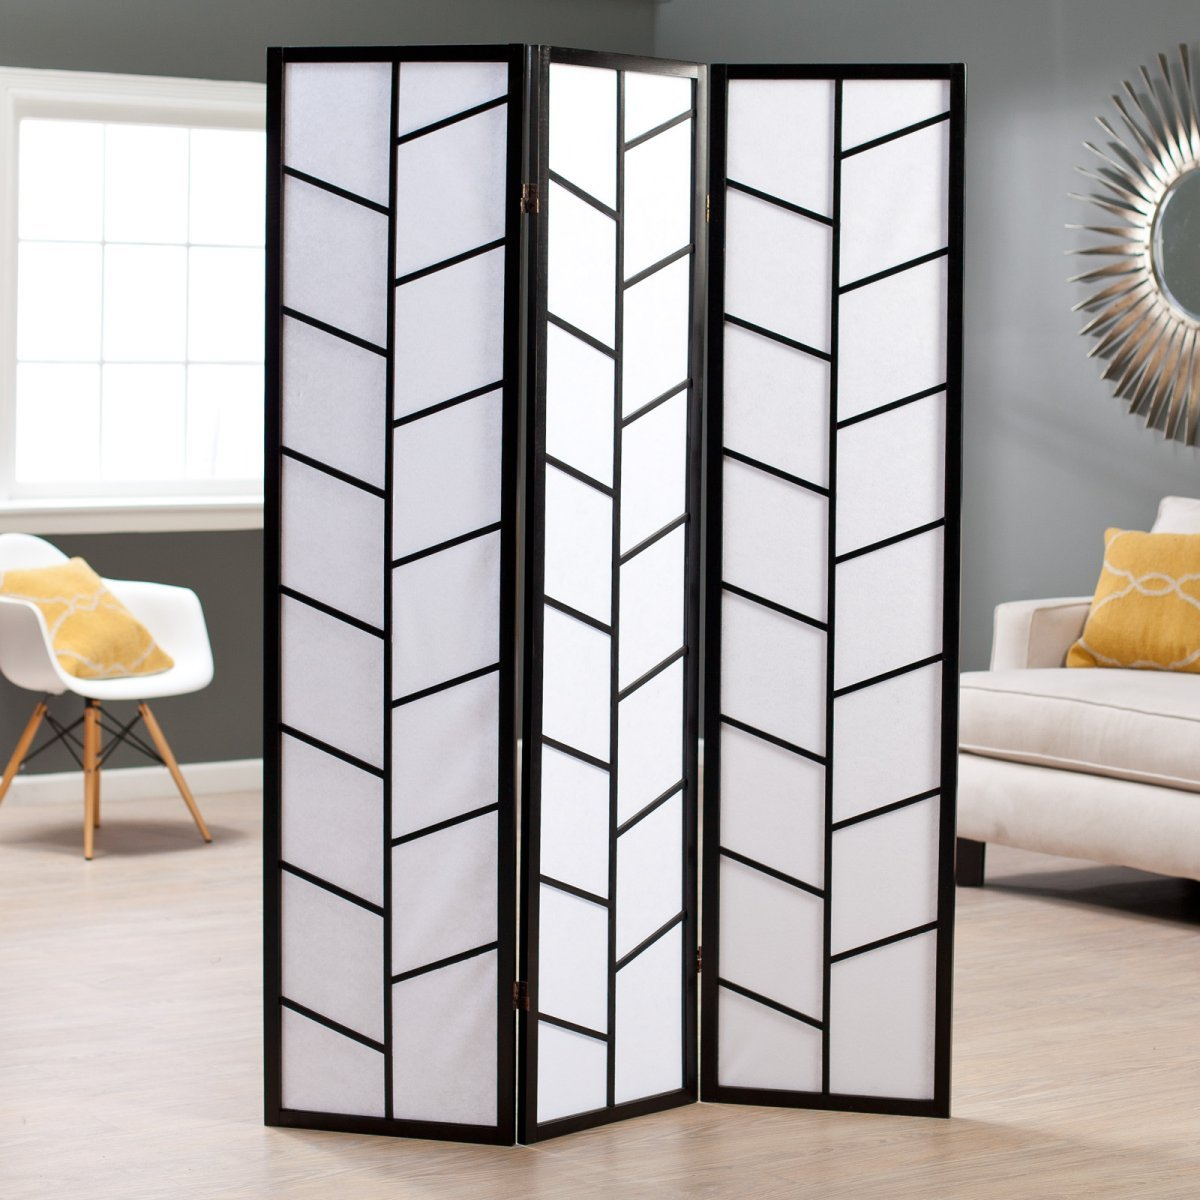 small dividers about com best with home divider separator regard enrich room icon of to your allstateloghomes ideas aesthetic